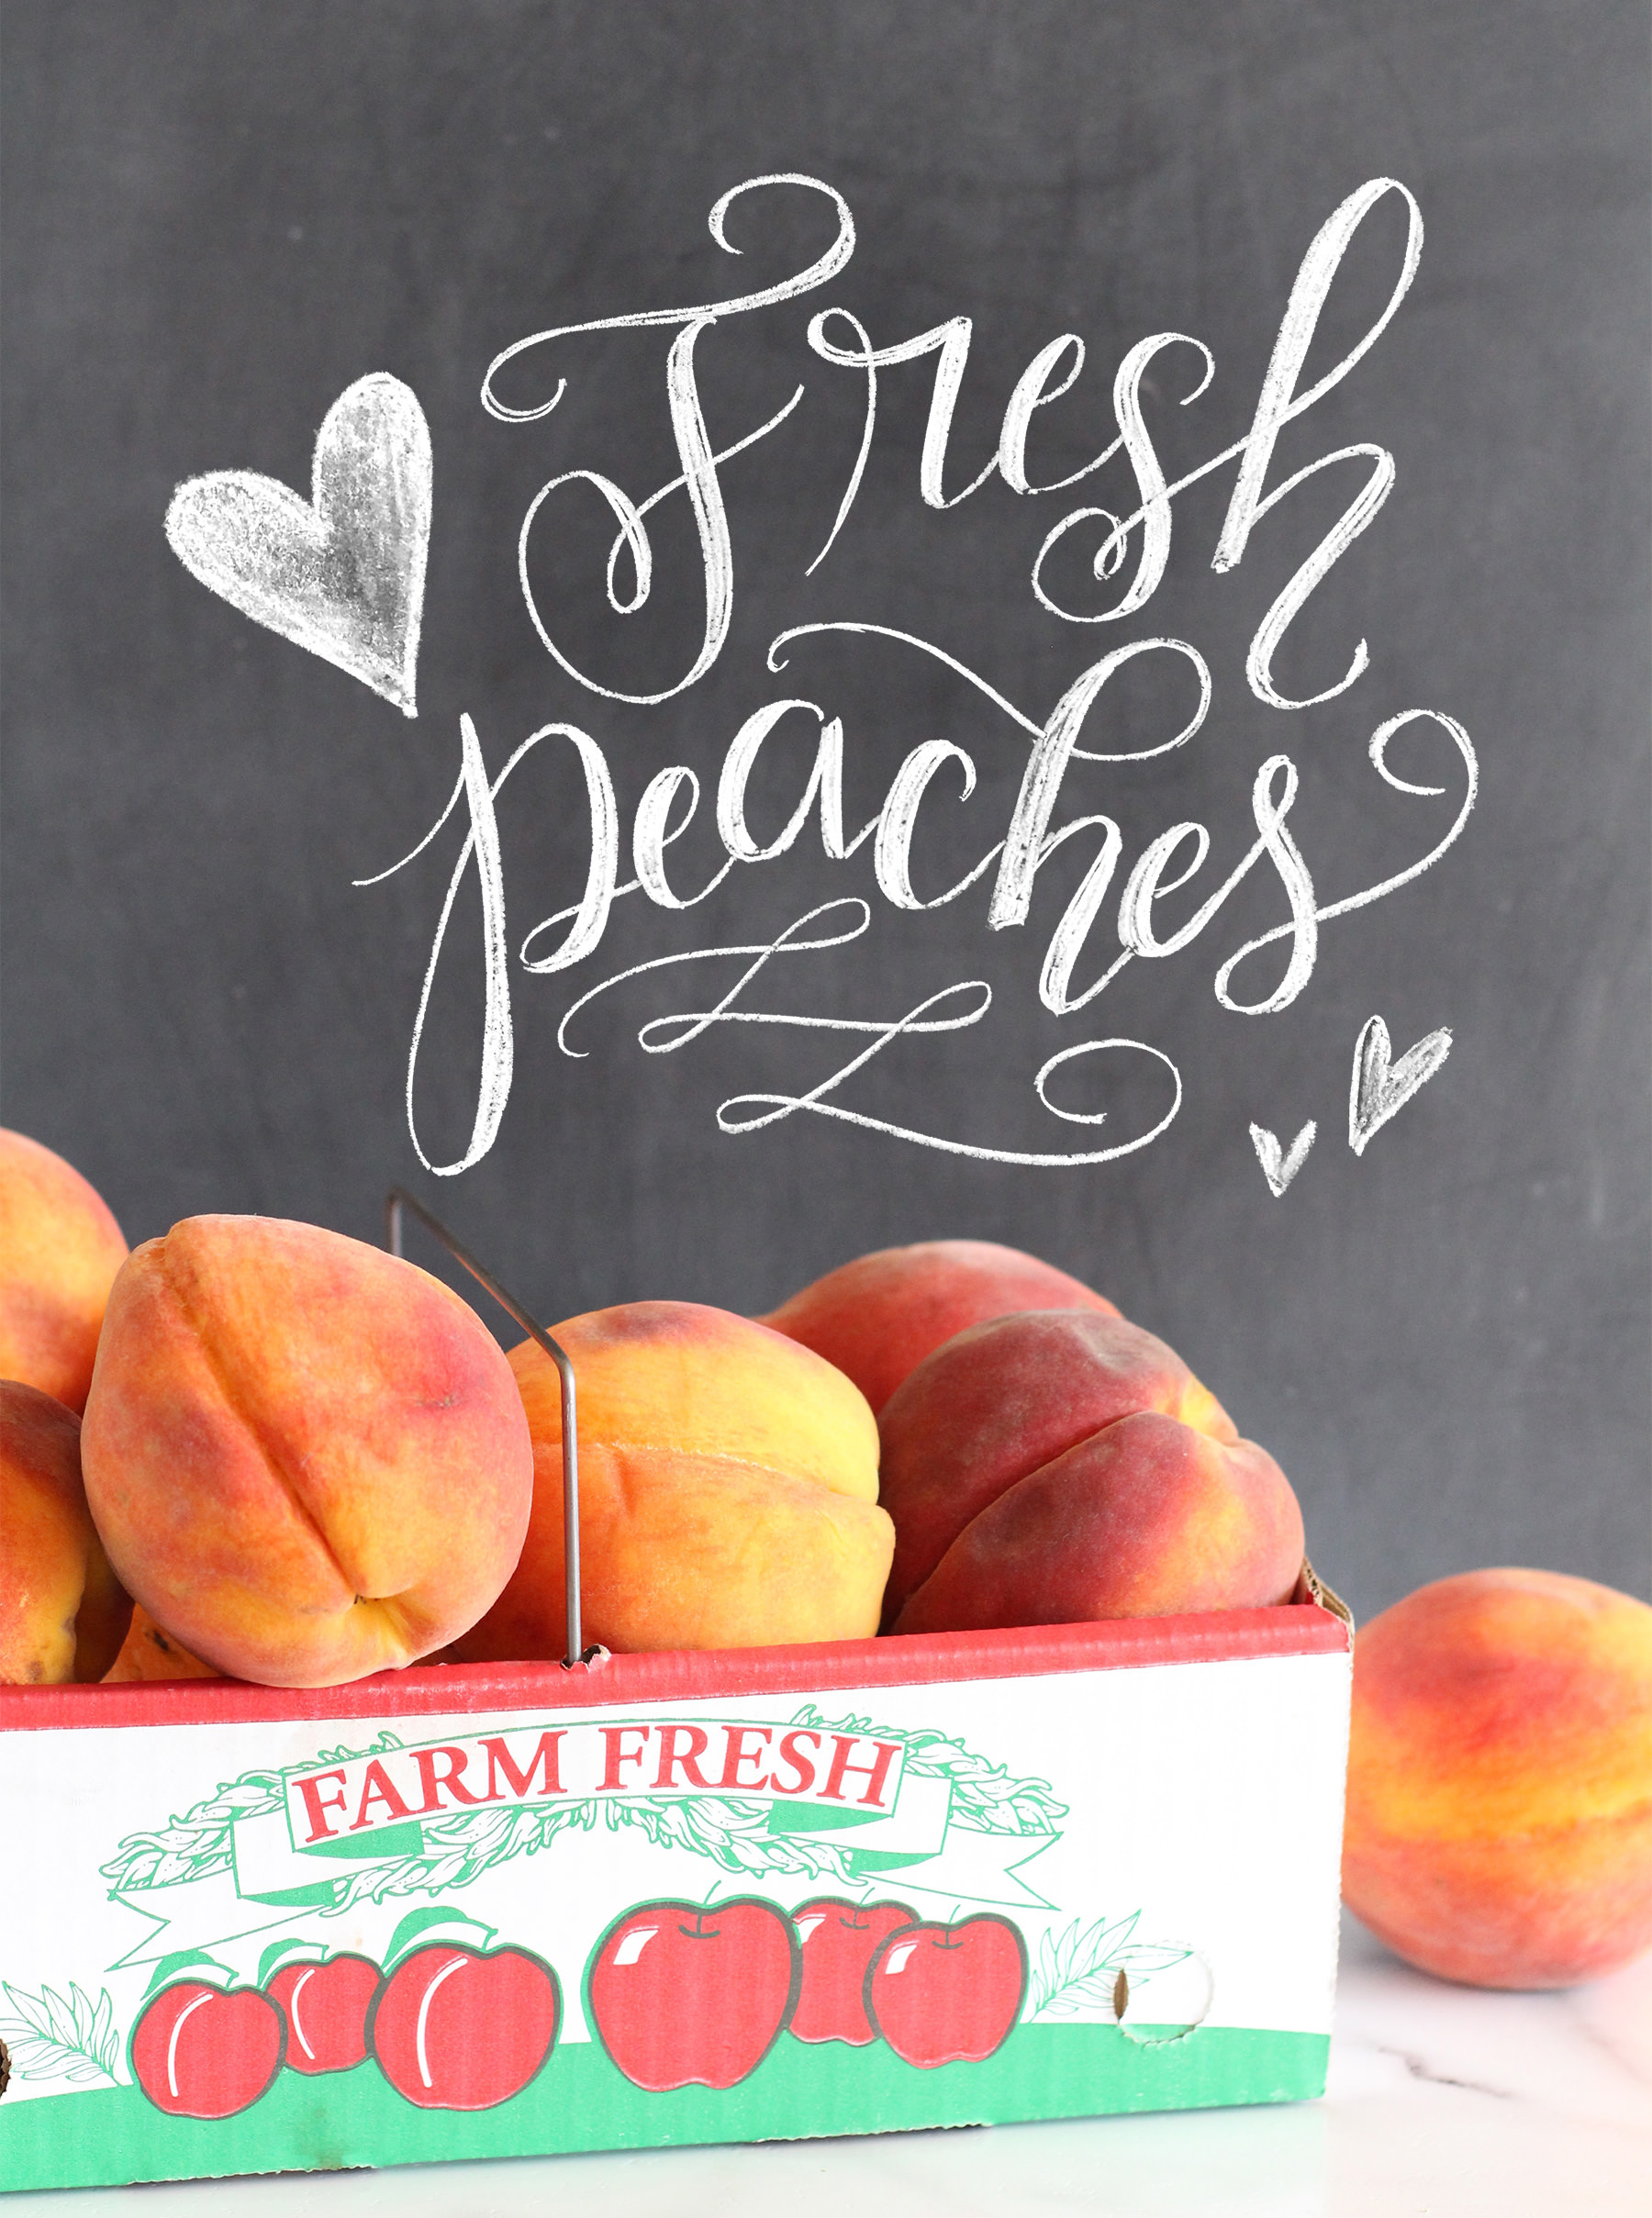 How to use those fresh peaches: make a peach cobbler! Recipe on Lily & Val Living along with an illustrated recipe print.